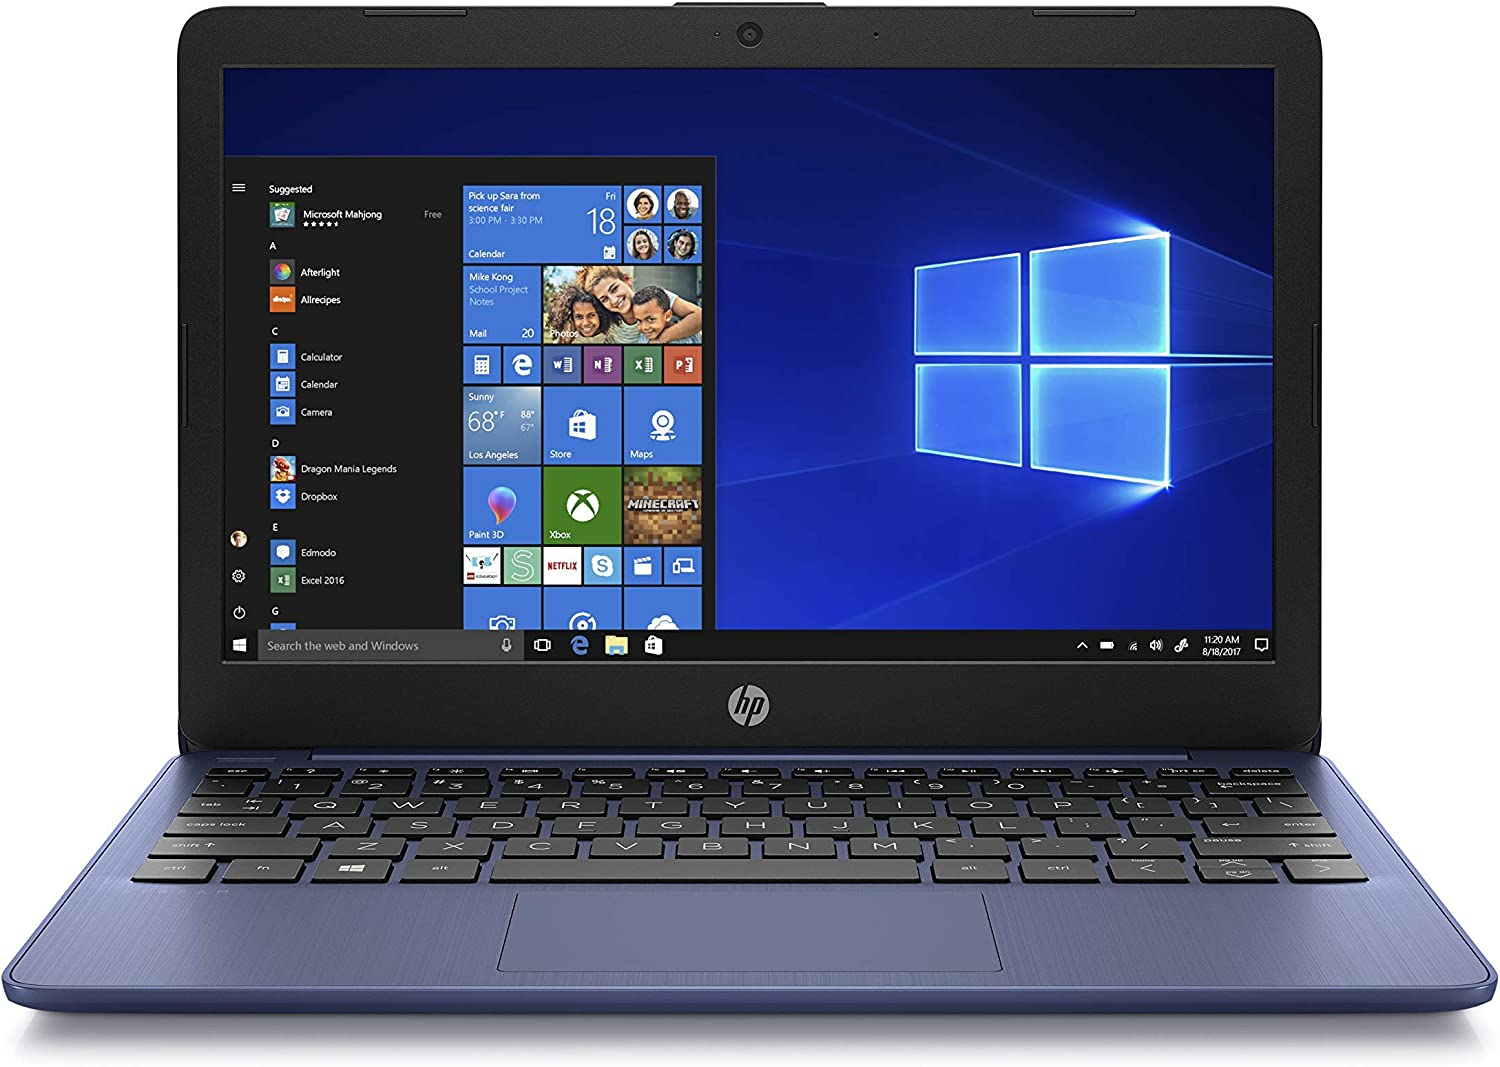 HP Stream 11-Inch Laptop, Intel X5-E8000 Processor, 4 GB RAM, 32 GB eMMC, Windows 10 Home in S Mode with Office 365 Personal and 1 TB Onedrive Storage for One Year (11-ak1010nr, Royal Blue) (Renewed)